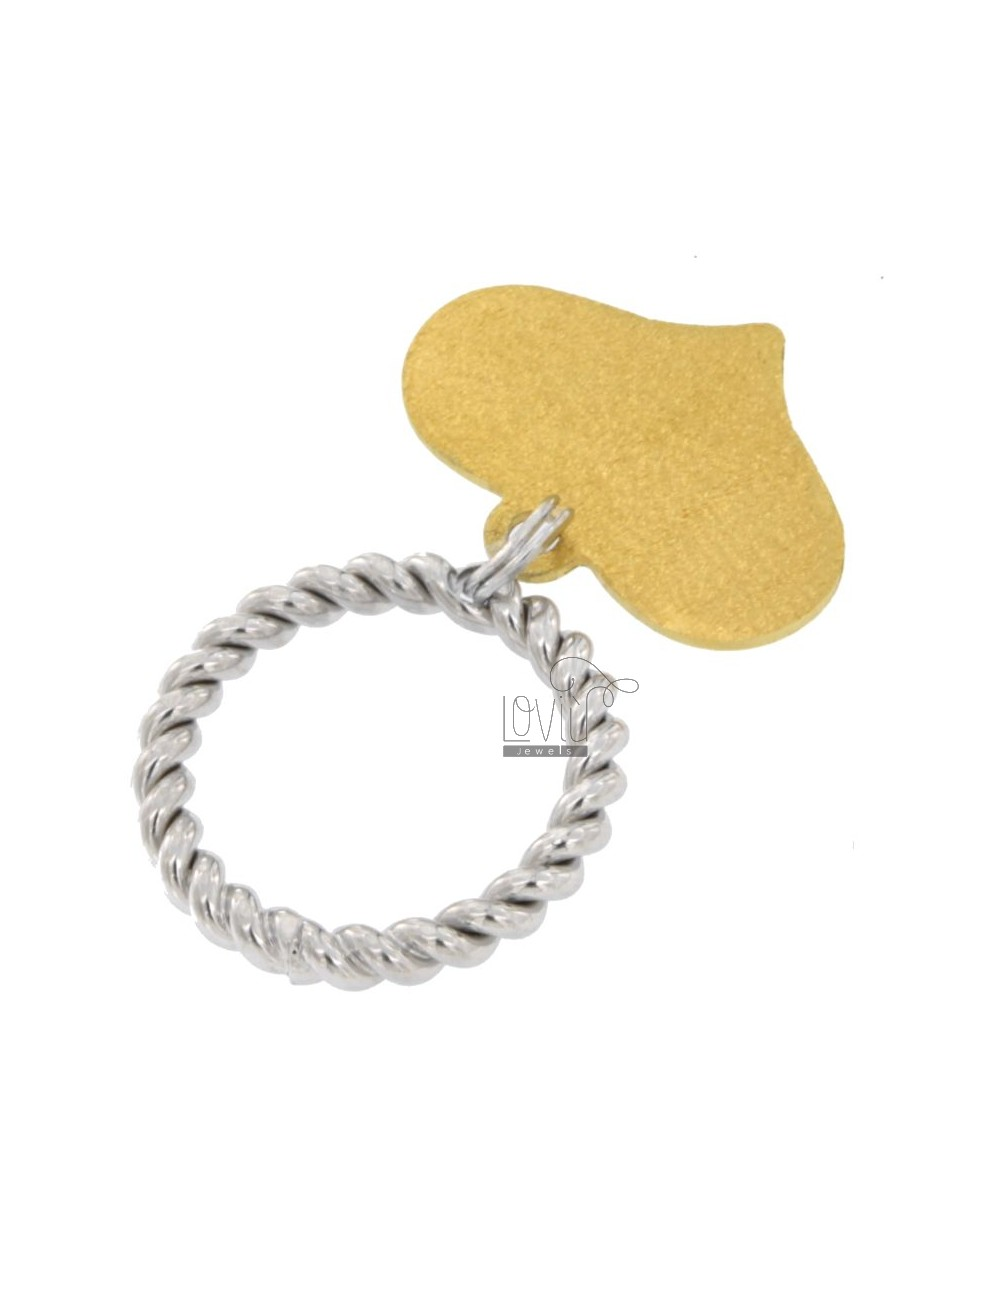 TORCHON RING WITH HEART PENDANT AG RHODIUM AND GOLD PLATED SIZE 925 12 TIT